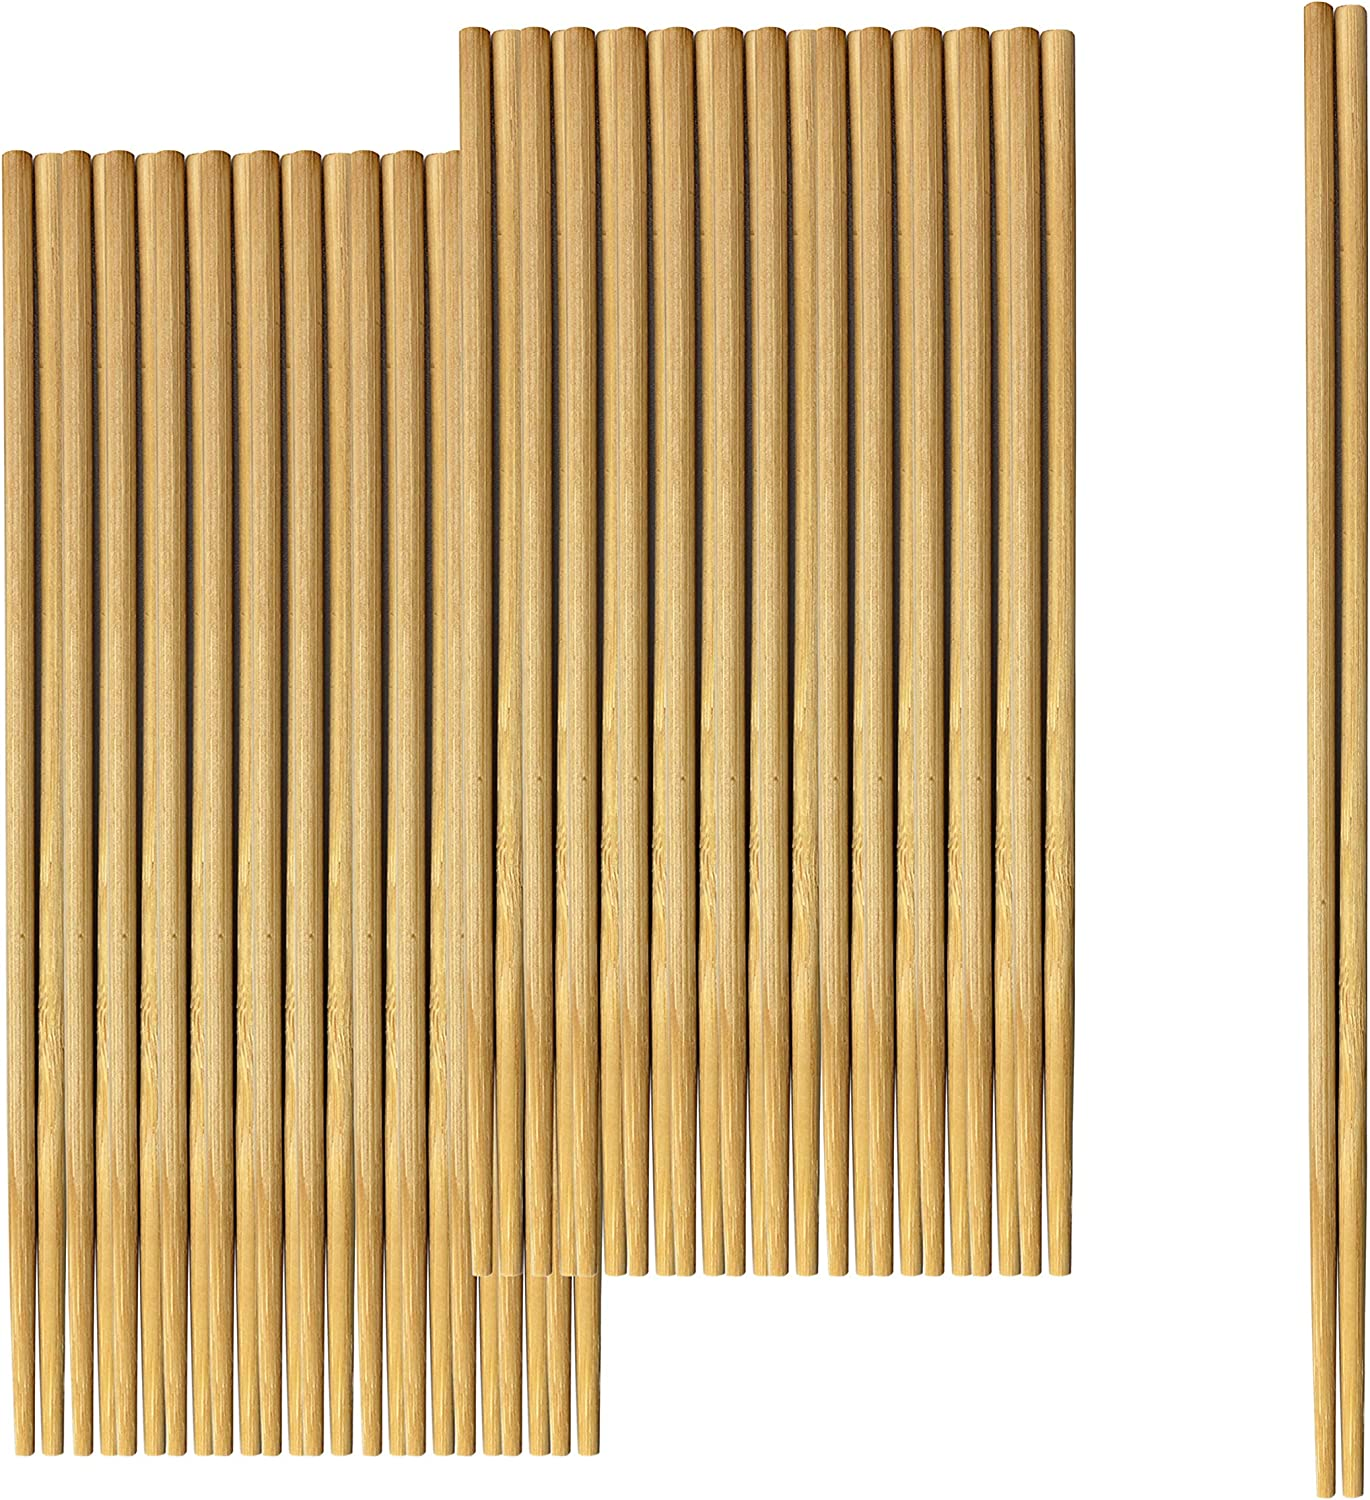 Bamboo Wooden Separated Disposable Chopsticks-50 Pairs-100 Pairs-200 Pairs- Individually Wrapped- Premium Quality Chopsticks for Sushi, Noodles and Asian Food (200)